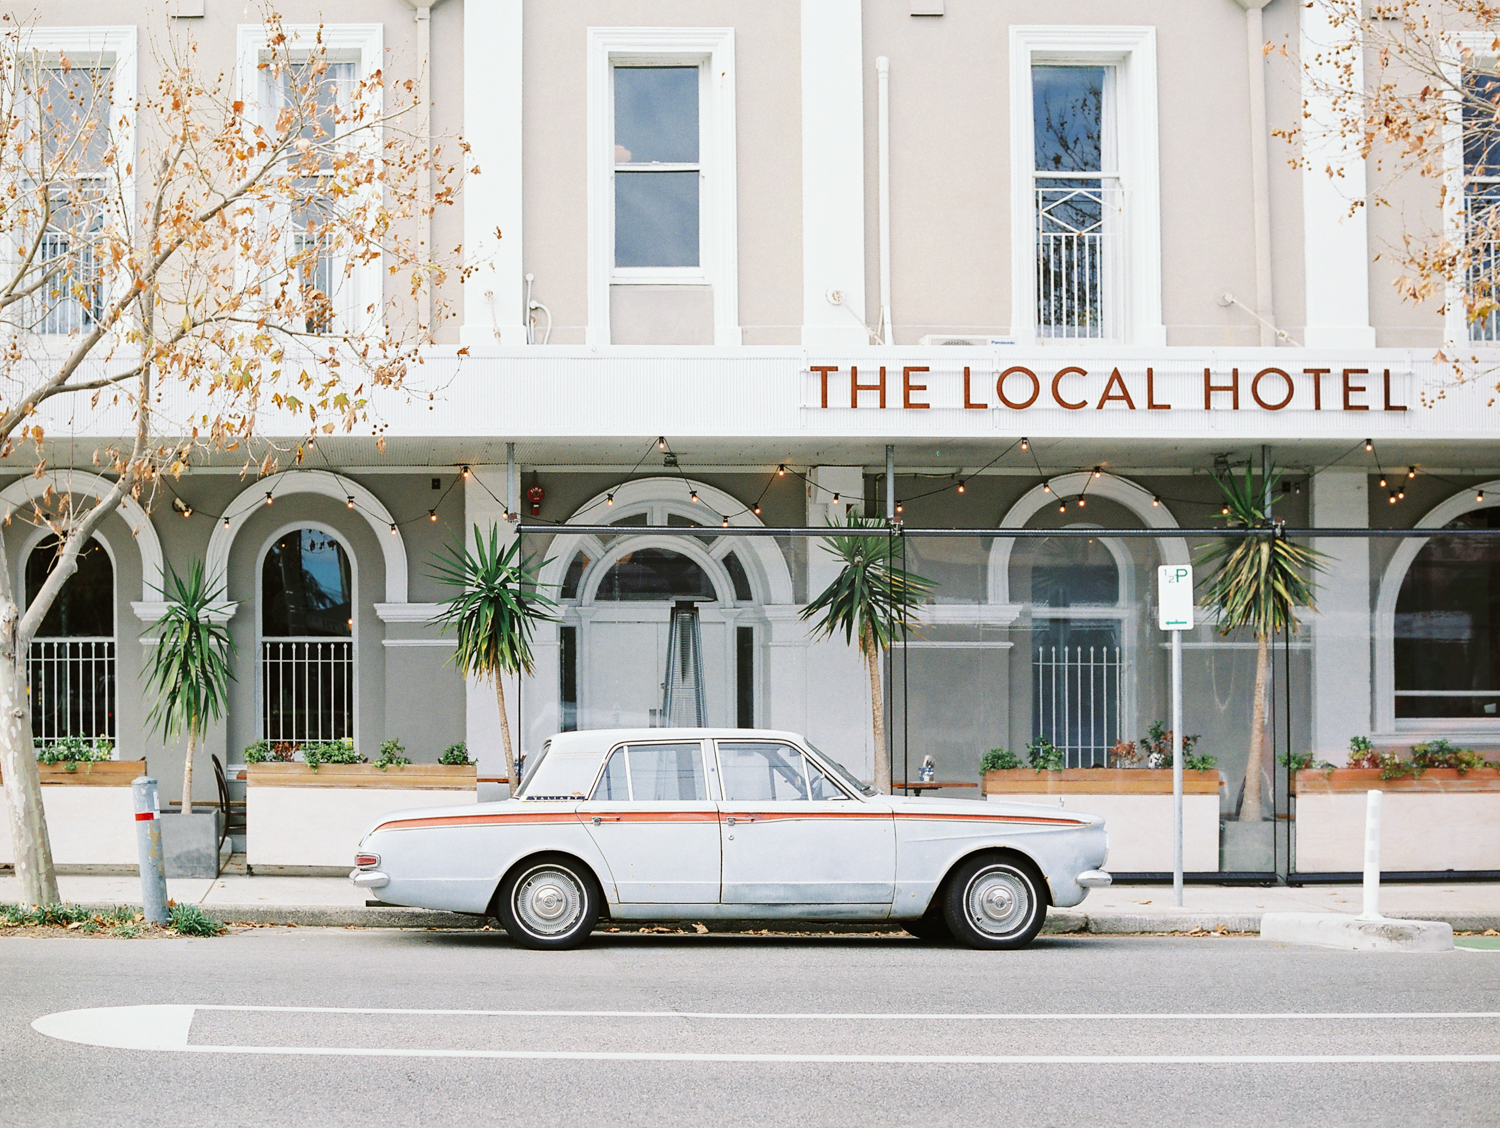 Valerie - The Local Hotel in South Fremantle